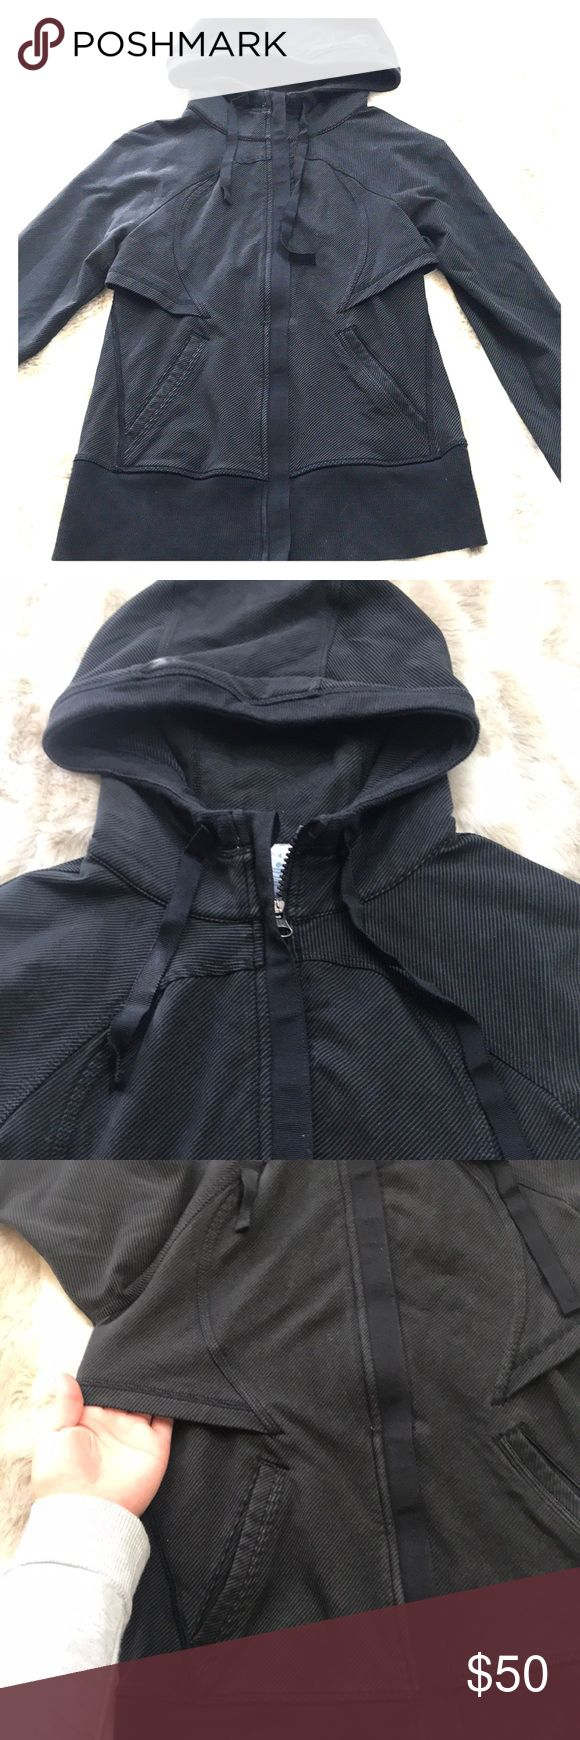 Lululemon Black Zip Up Hoodie 4 Not sure of the name for this, micro stripped black and gray with solid black trim. Two front pockets, thumb holes, under arm and back venting. Its cotton and spandex and medium wt single layer fabric. Not at thick as a scuba hoodie but a nice track jacket. Mild signs of wear. Ive worn and washed this once, I am the second owner. See pics for details. My lights wash out the color a bit it's more rich in person. lululemon athletica Jackets & Coats